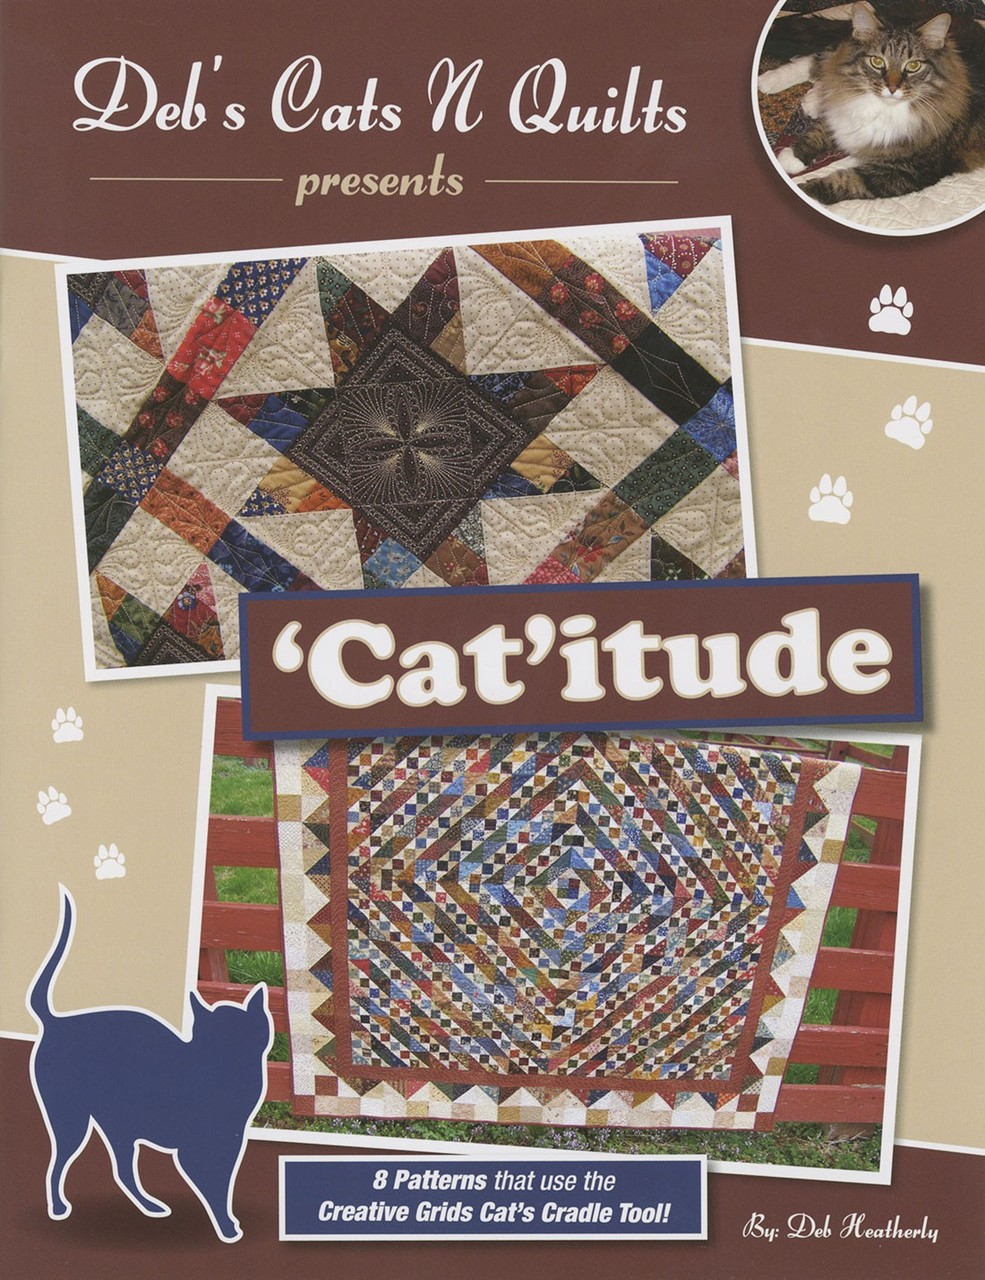 DH1501 - Cat'itude Pattern Book